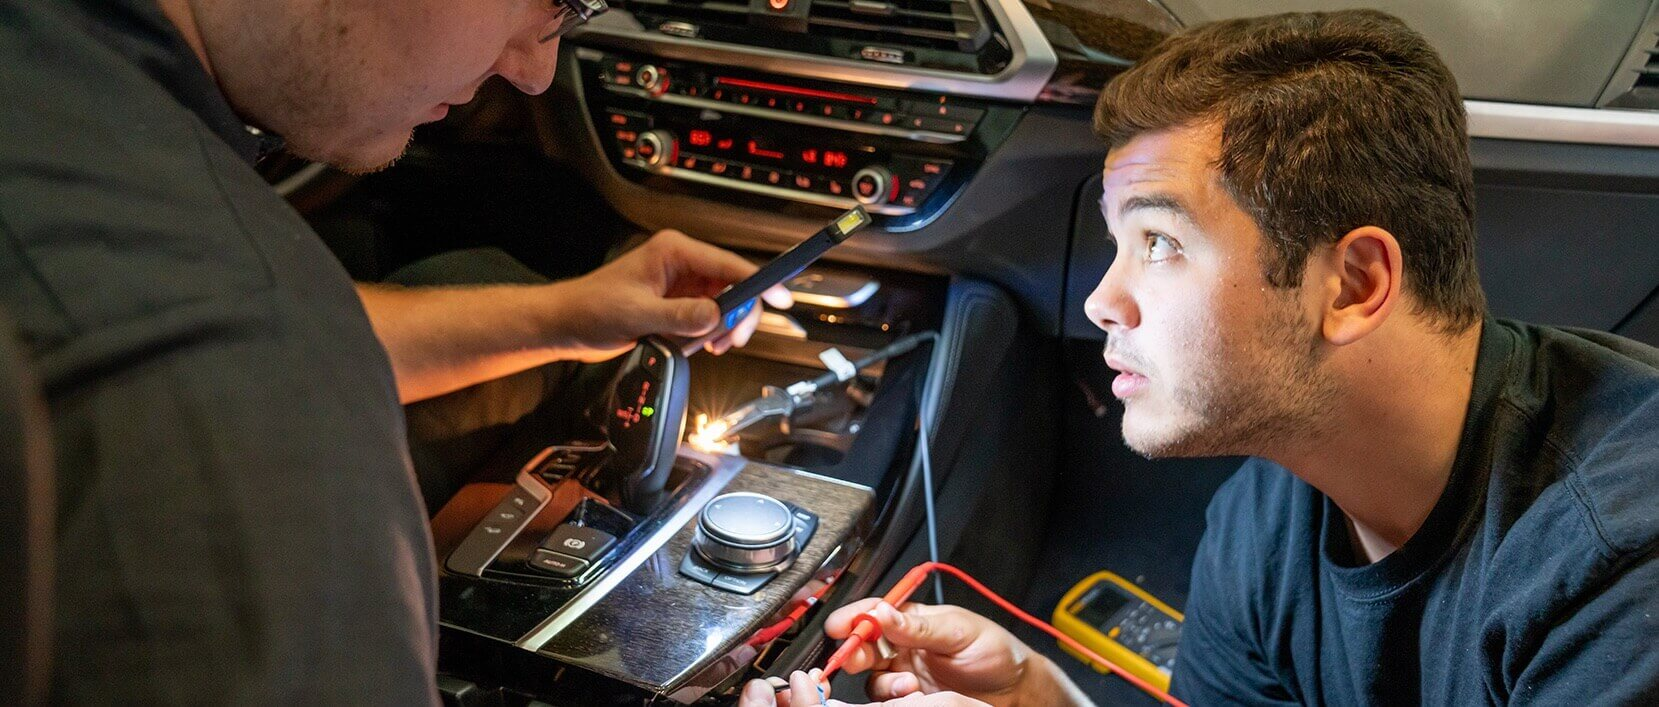 A male technician inspects the dashboard of a car while another technician holds a light so he can see.